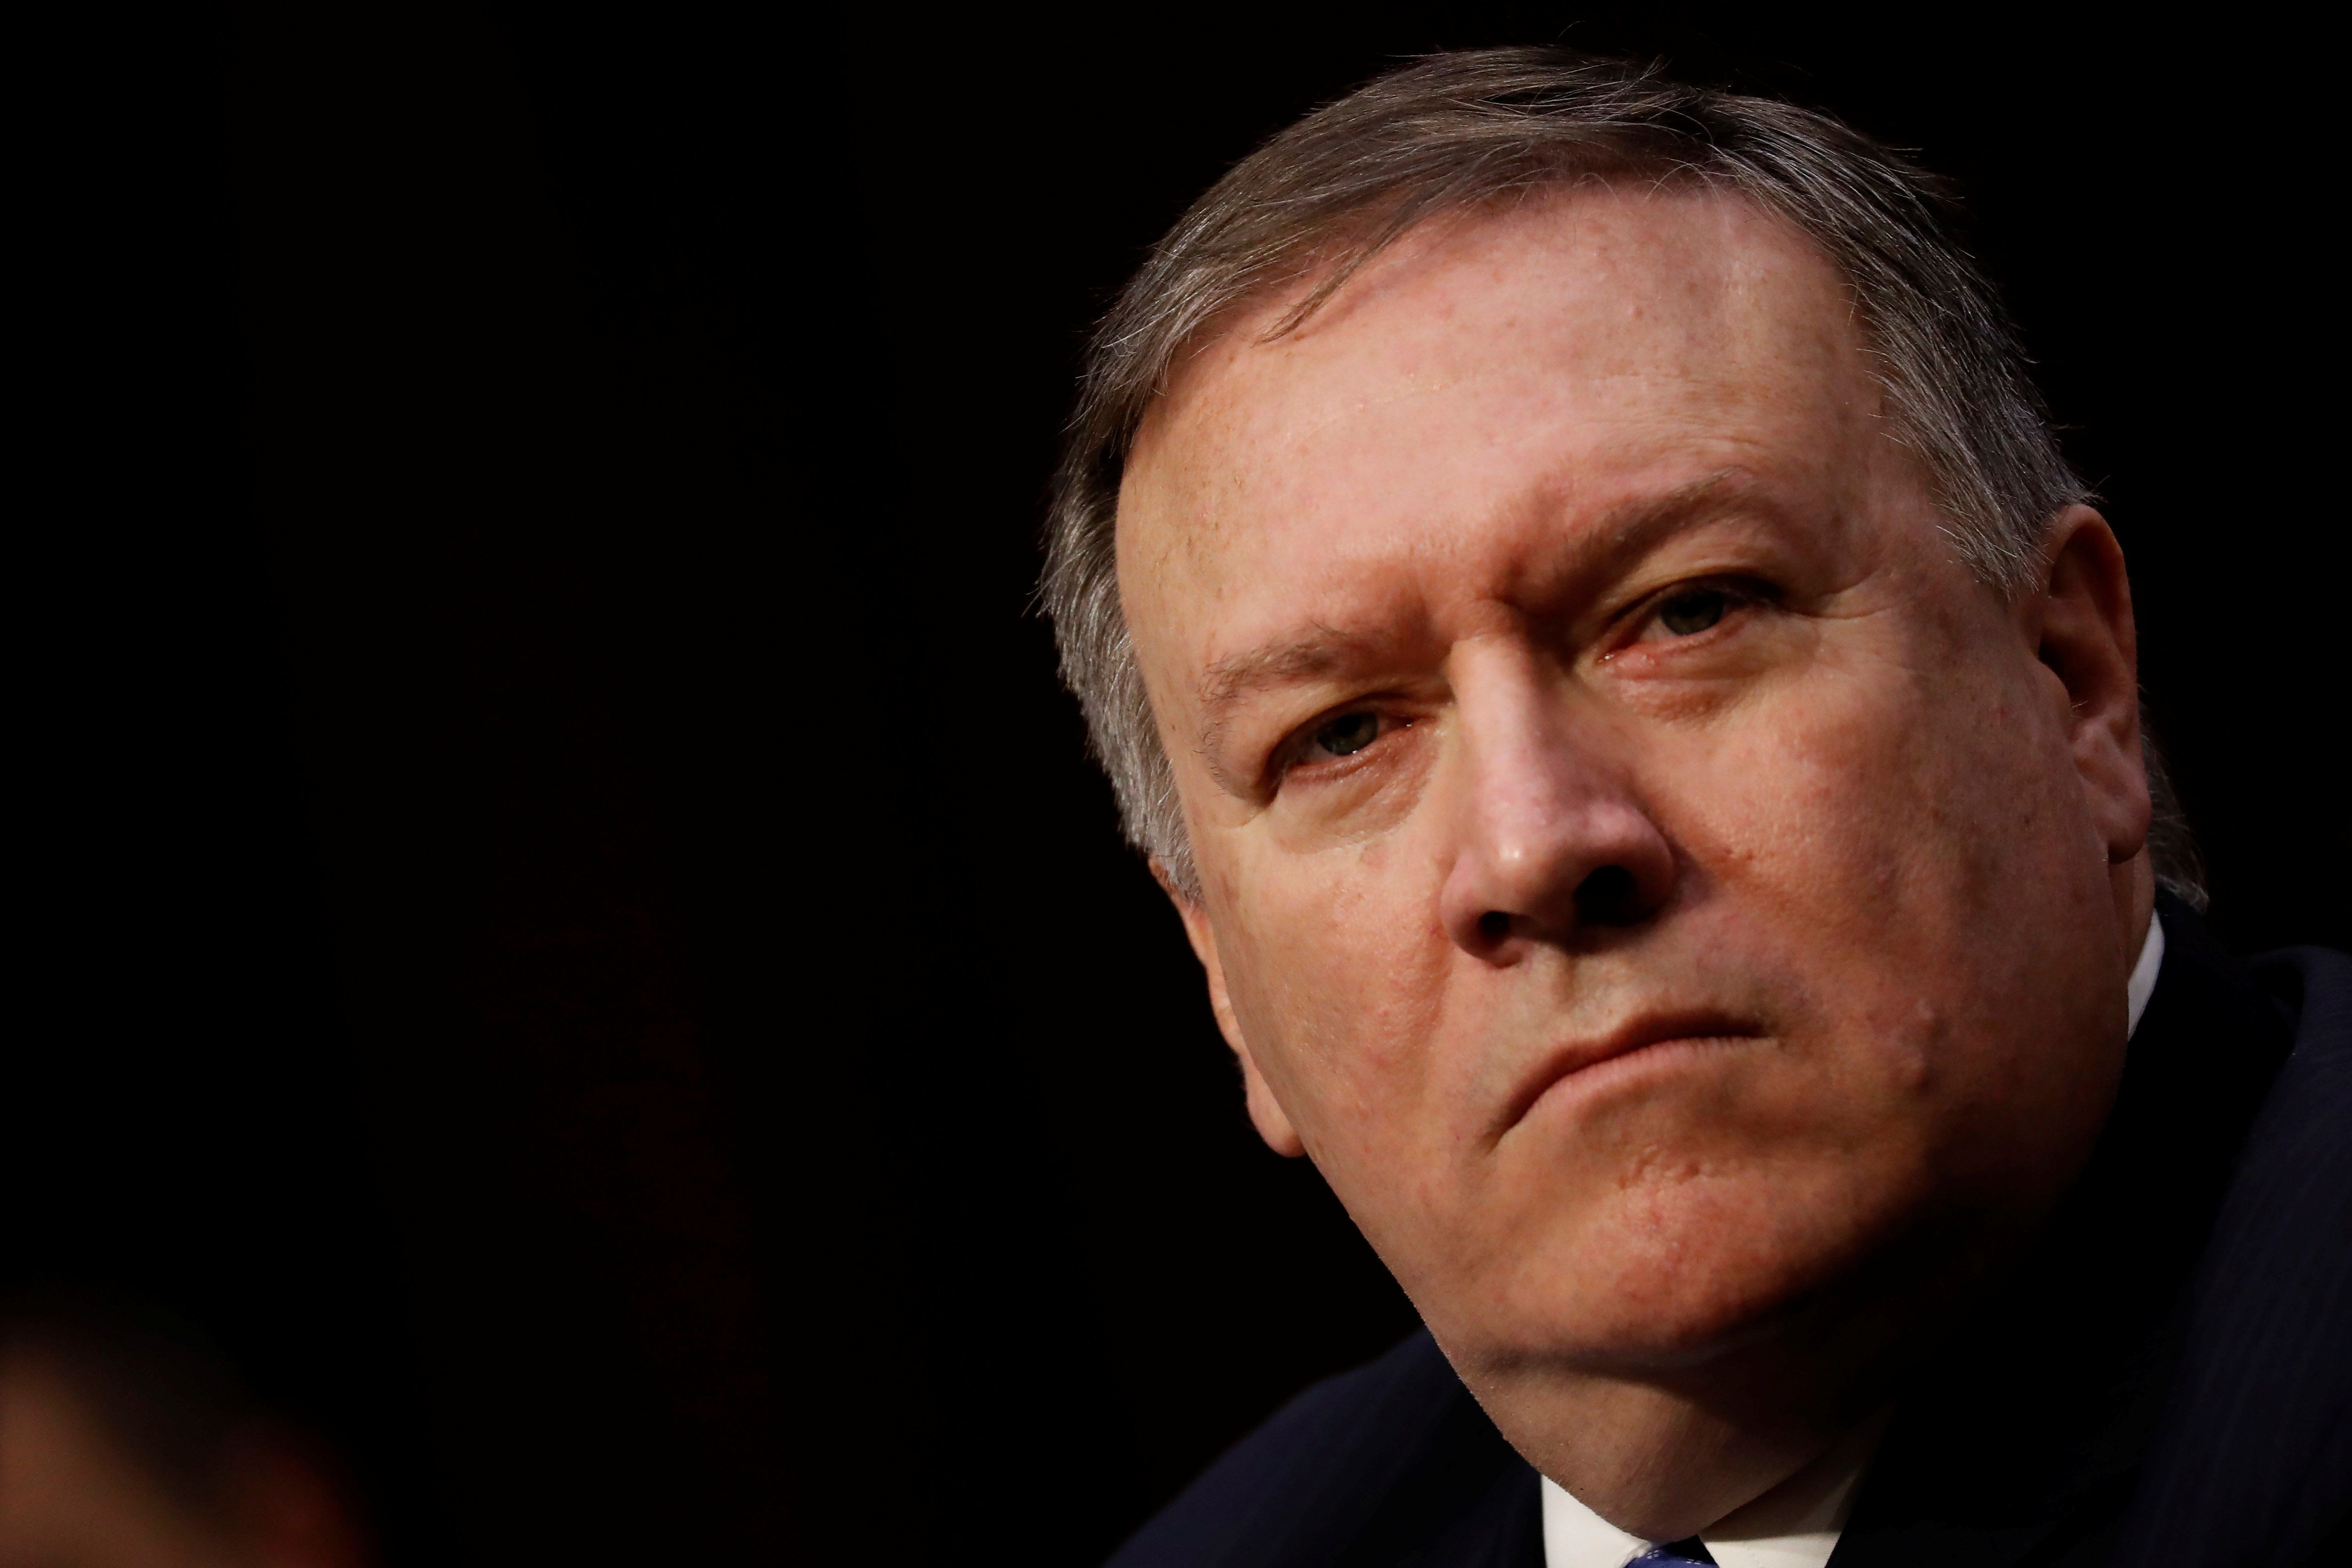 Central Intelligence Agency (CIA) Director Mike Pompeo testifies before the Senate Intelligence Committee on Capitol Hill in Washington, U.S., February 13, 2018. REUTERS/Aaron P. Bernstein